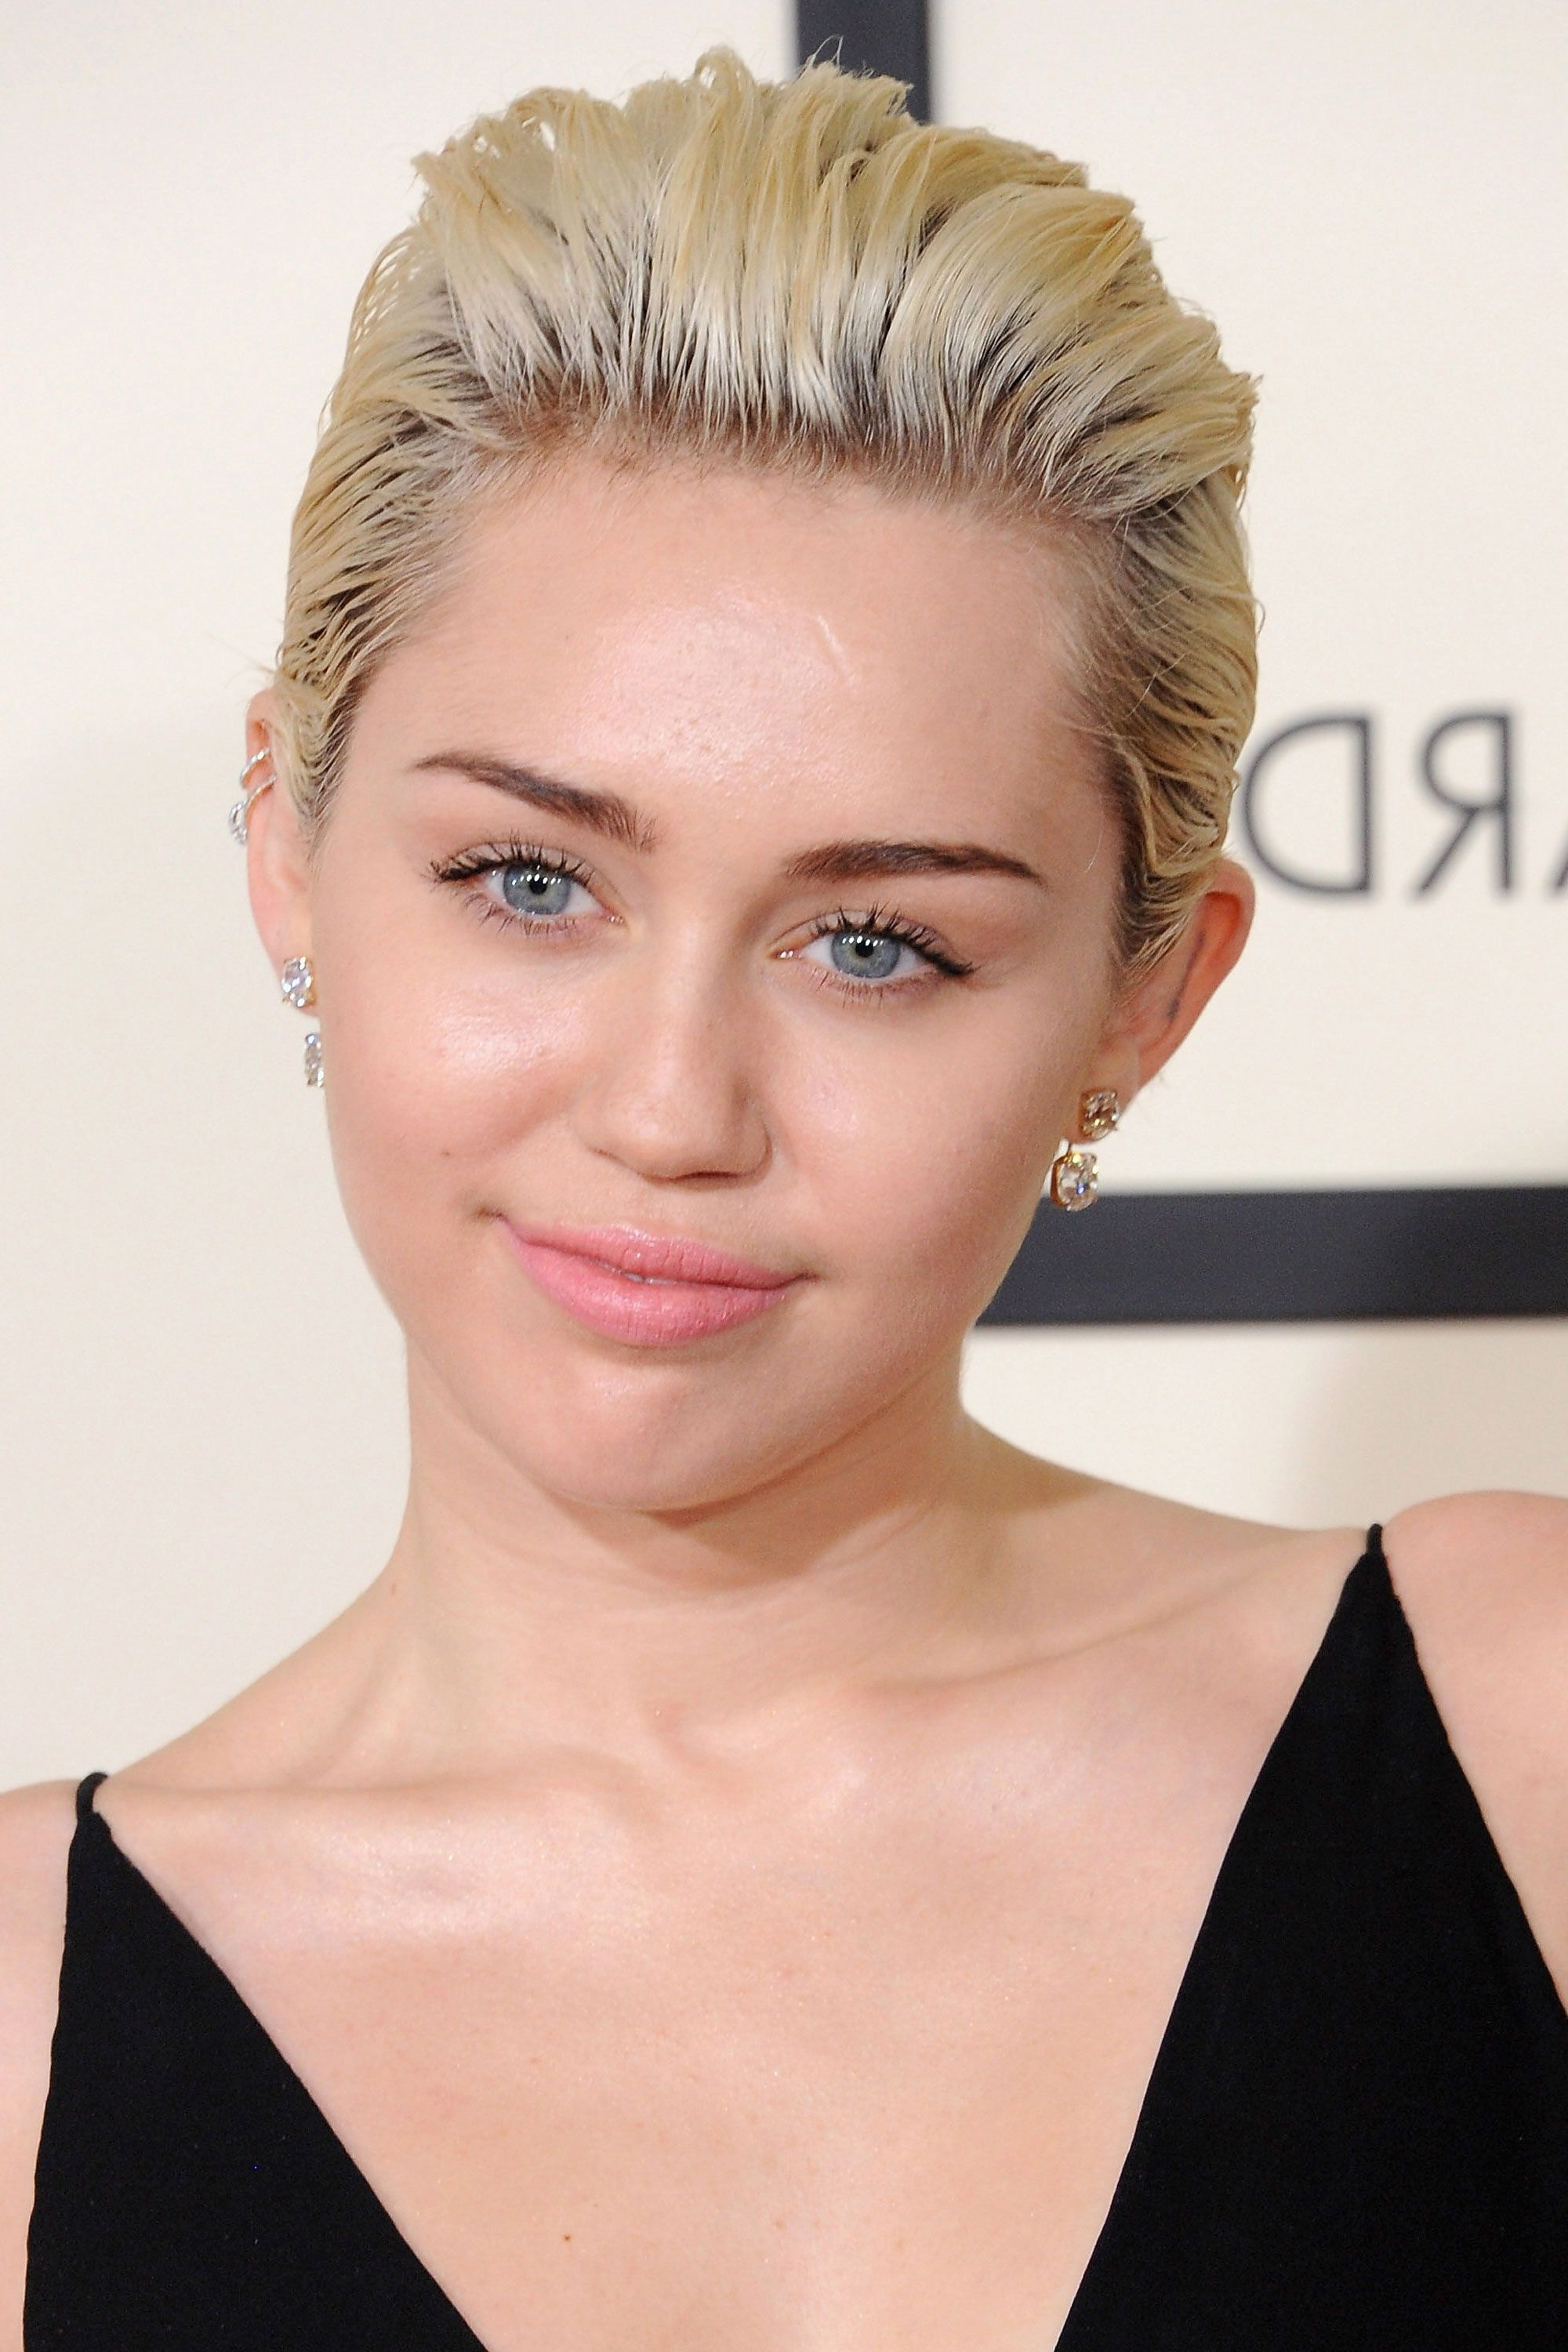 87 Cute Short Hairstyles & Haircuts - How To Style Short Hair in Miley Cyrus Short Hairstyles